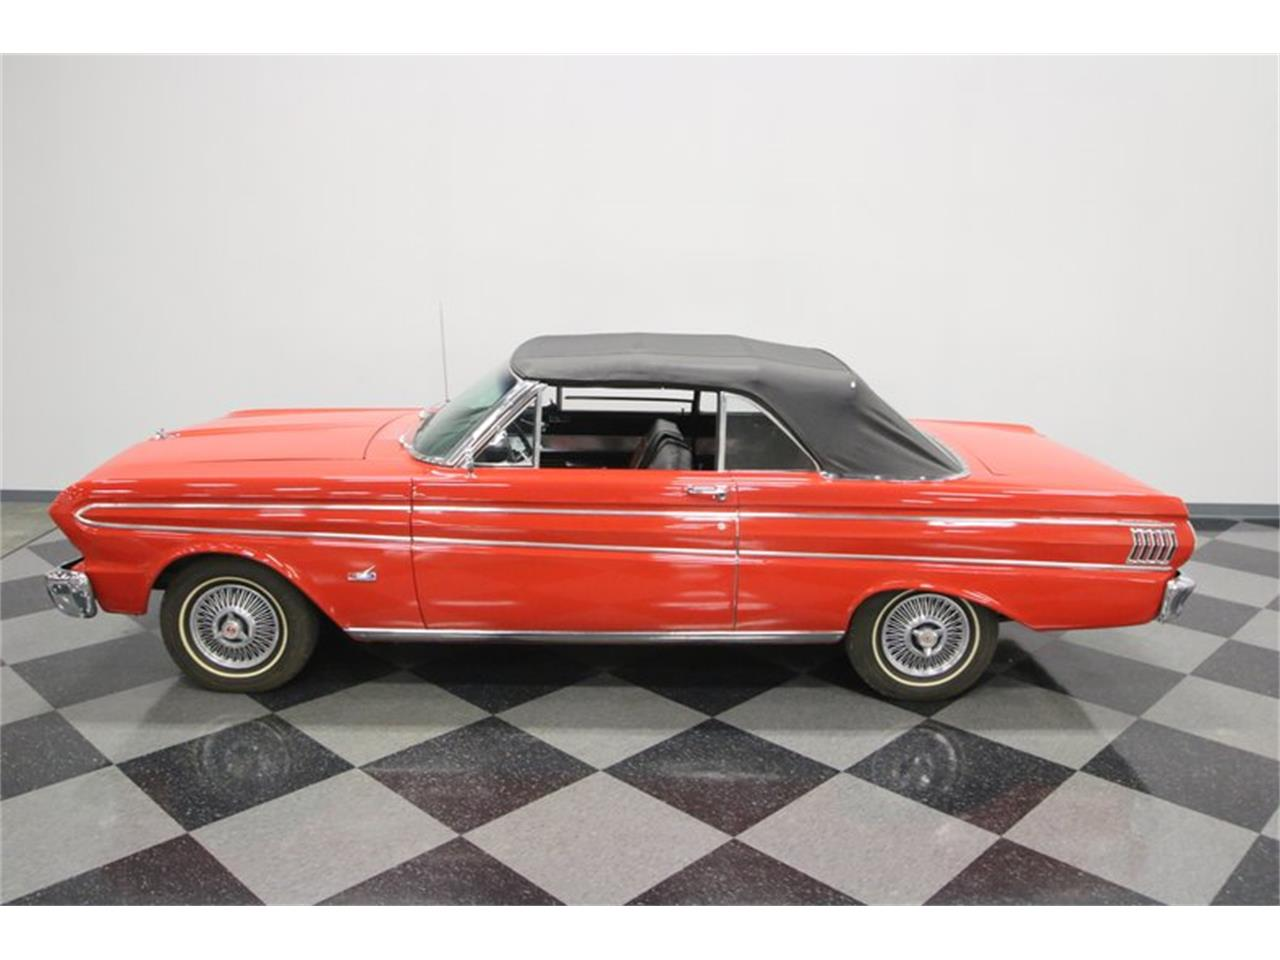 1964 Ford Falcon Futura for sale in Lavergne, TN – photo 24